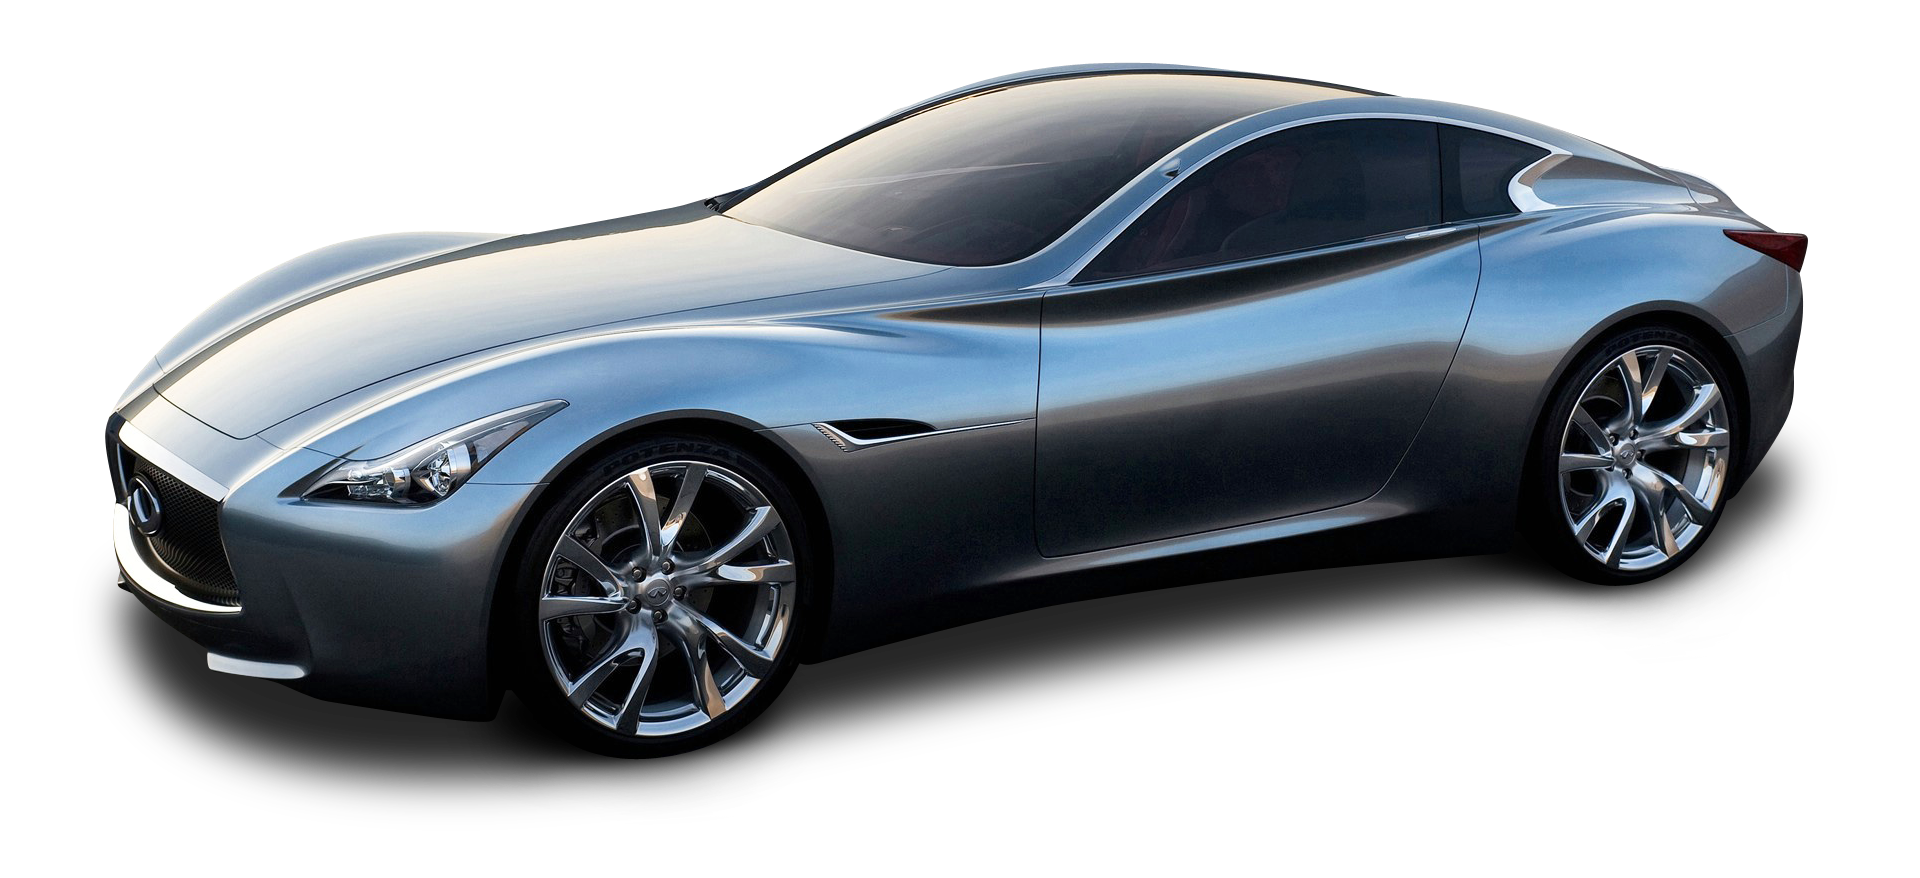 Sports Car Png Free - Download Infiniti Essence Concept Sports Car PNG Image for Free